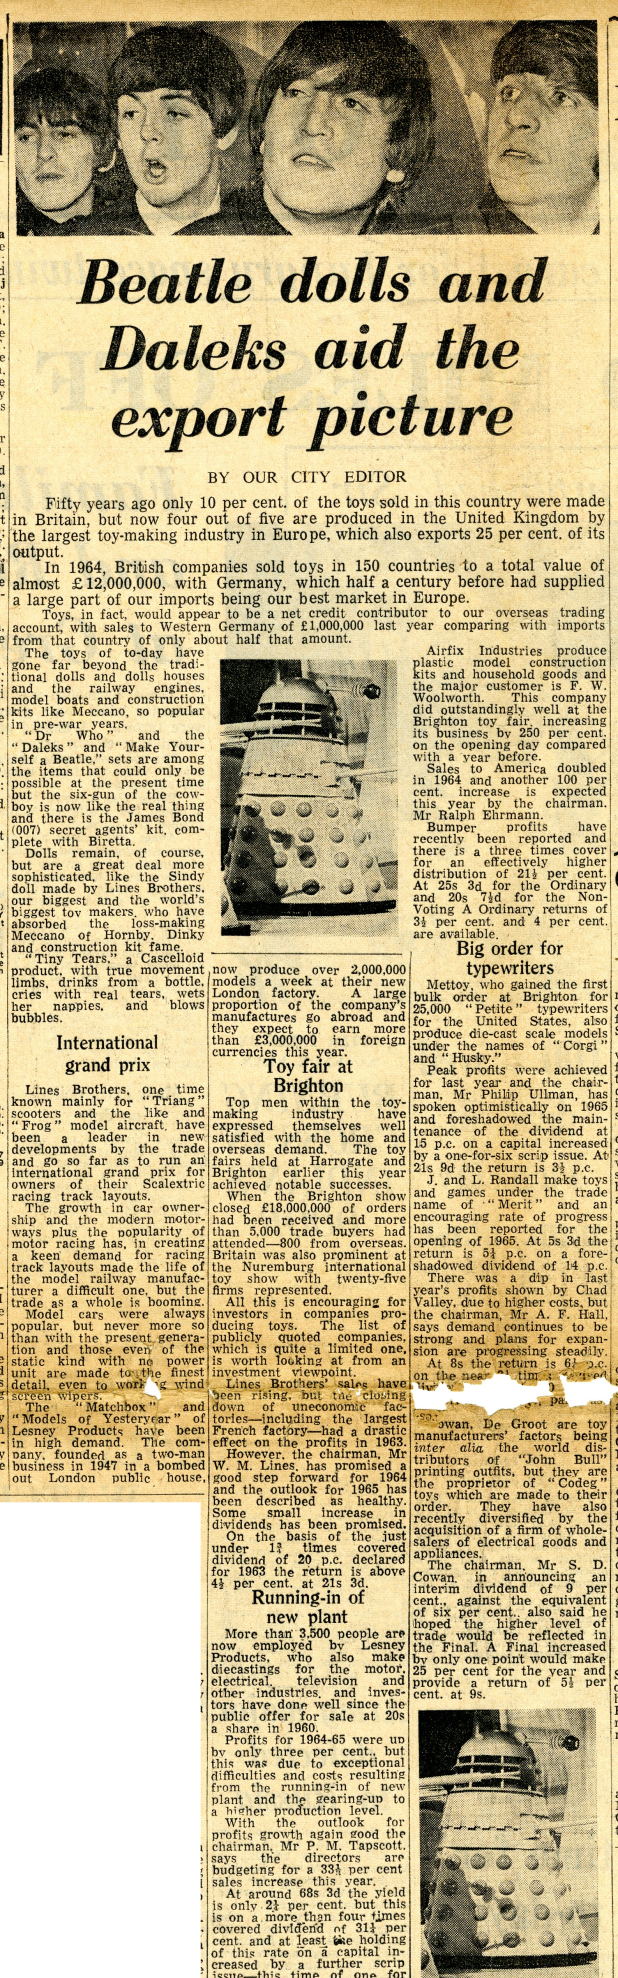 Liverpool Daily Post, June 8, 1965